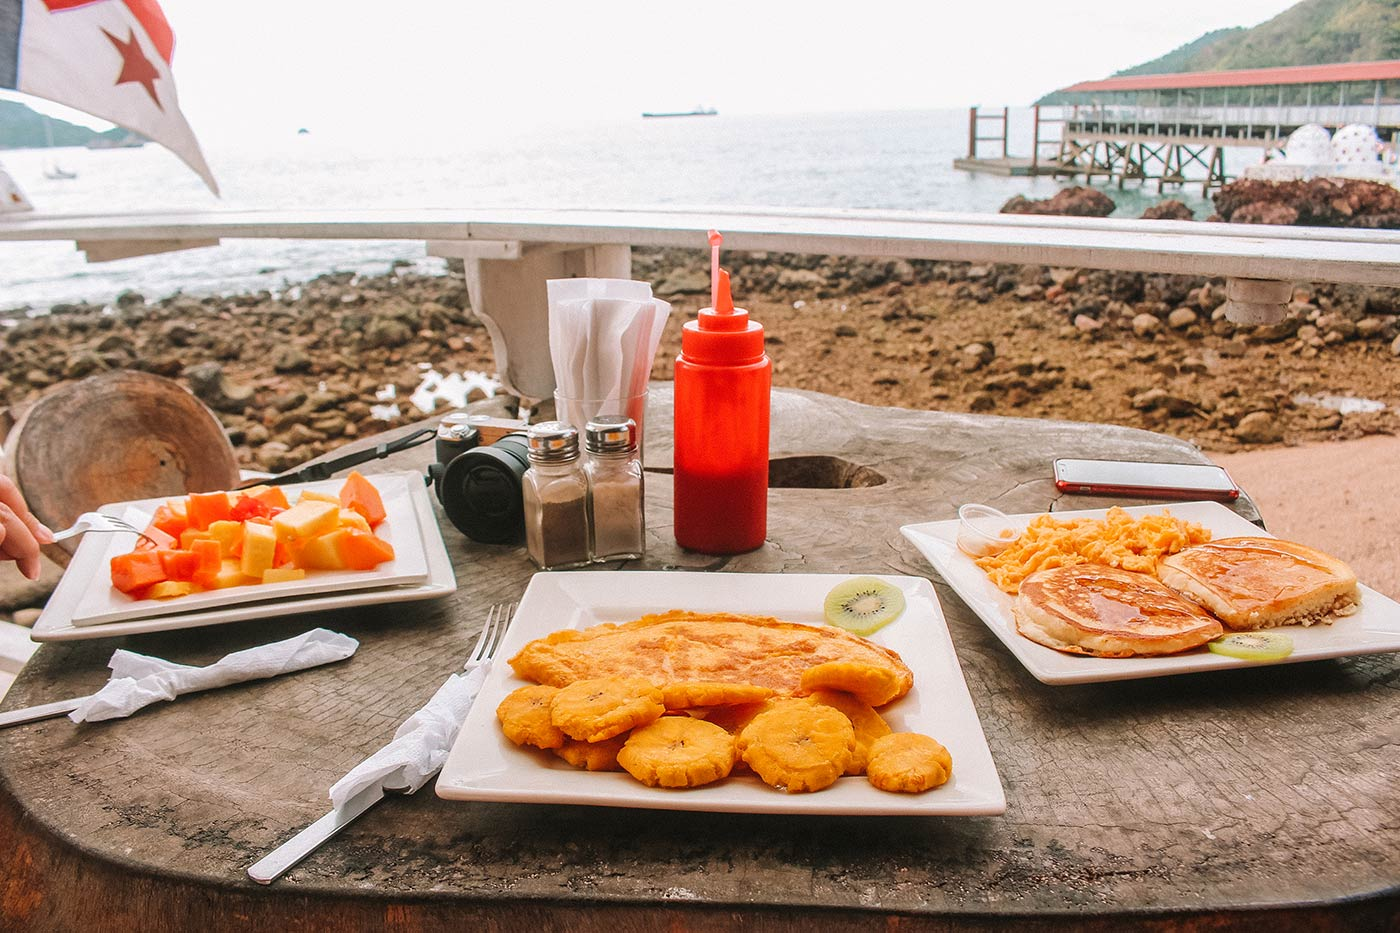 A guide to Taboga Island in Panama City daytrip